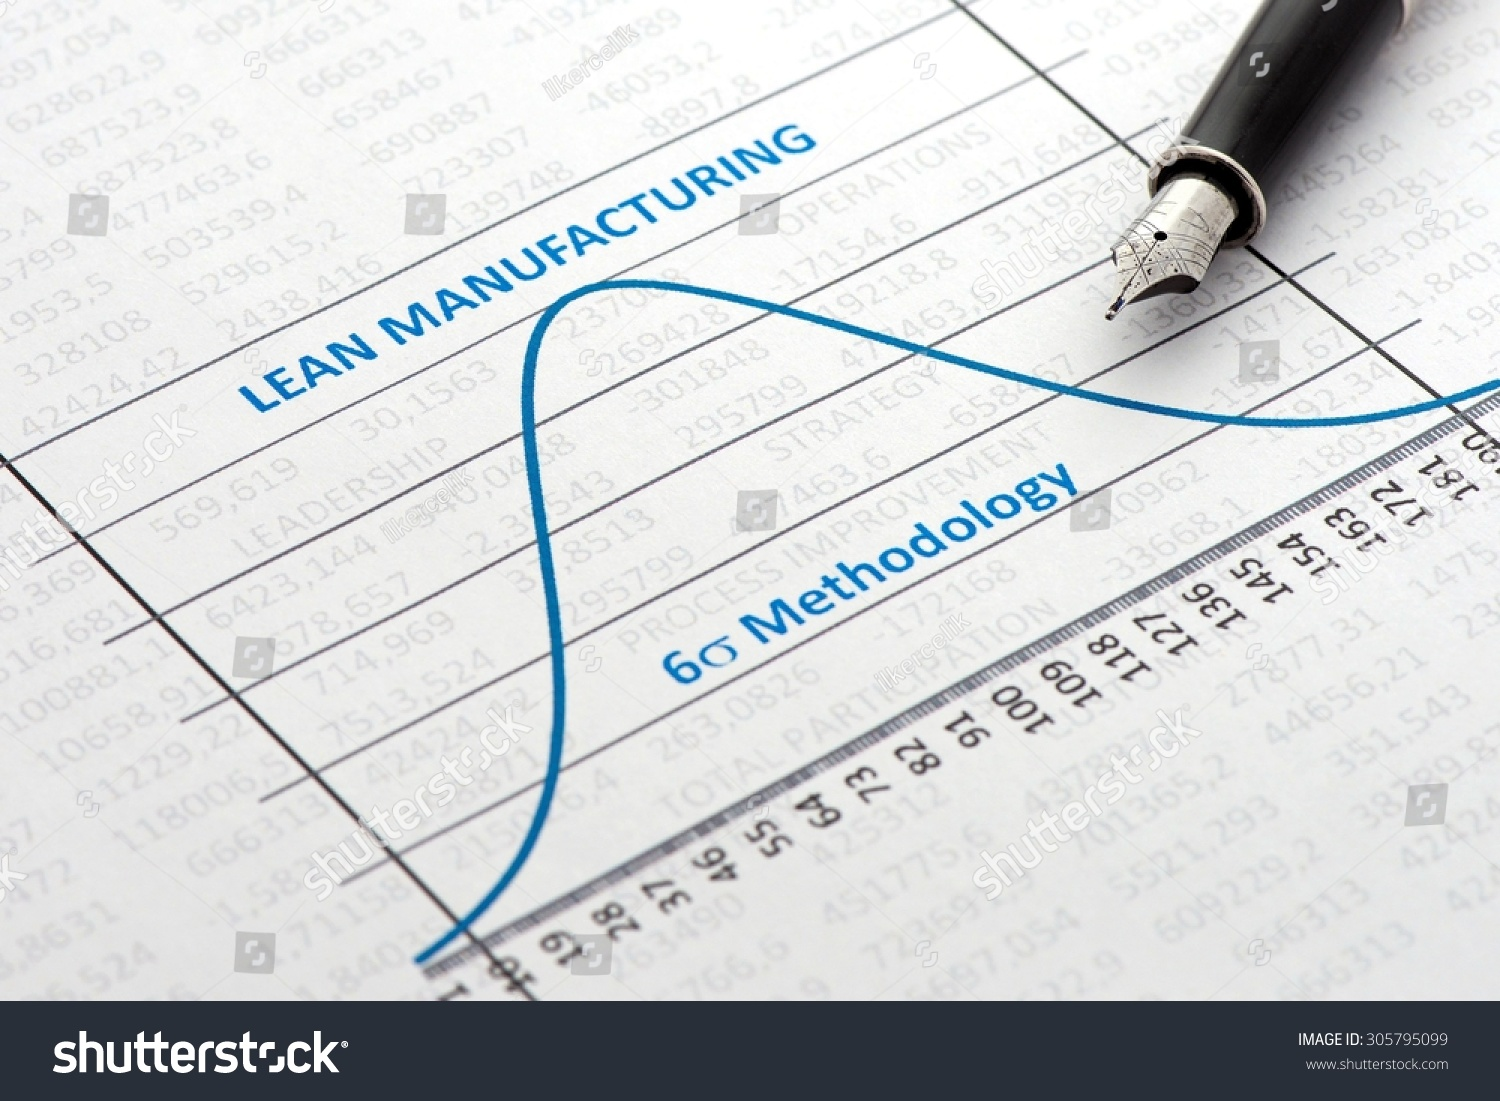 Efficiency Lean Manufacturing Management Shown By Stock Photo (Edit